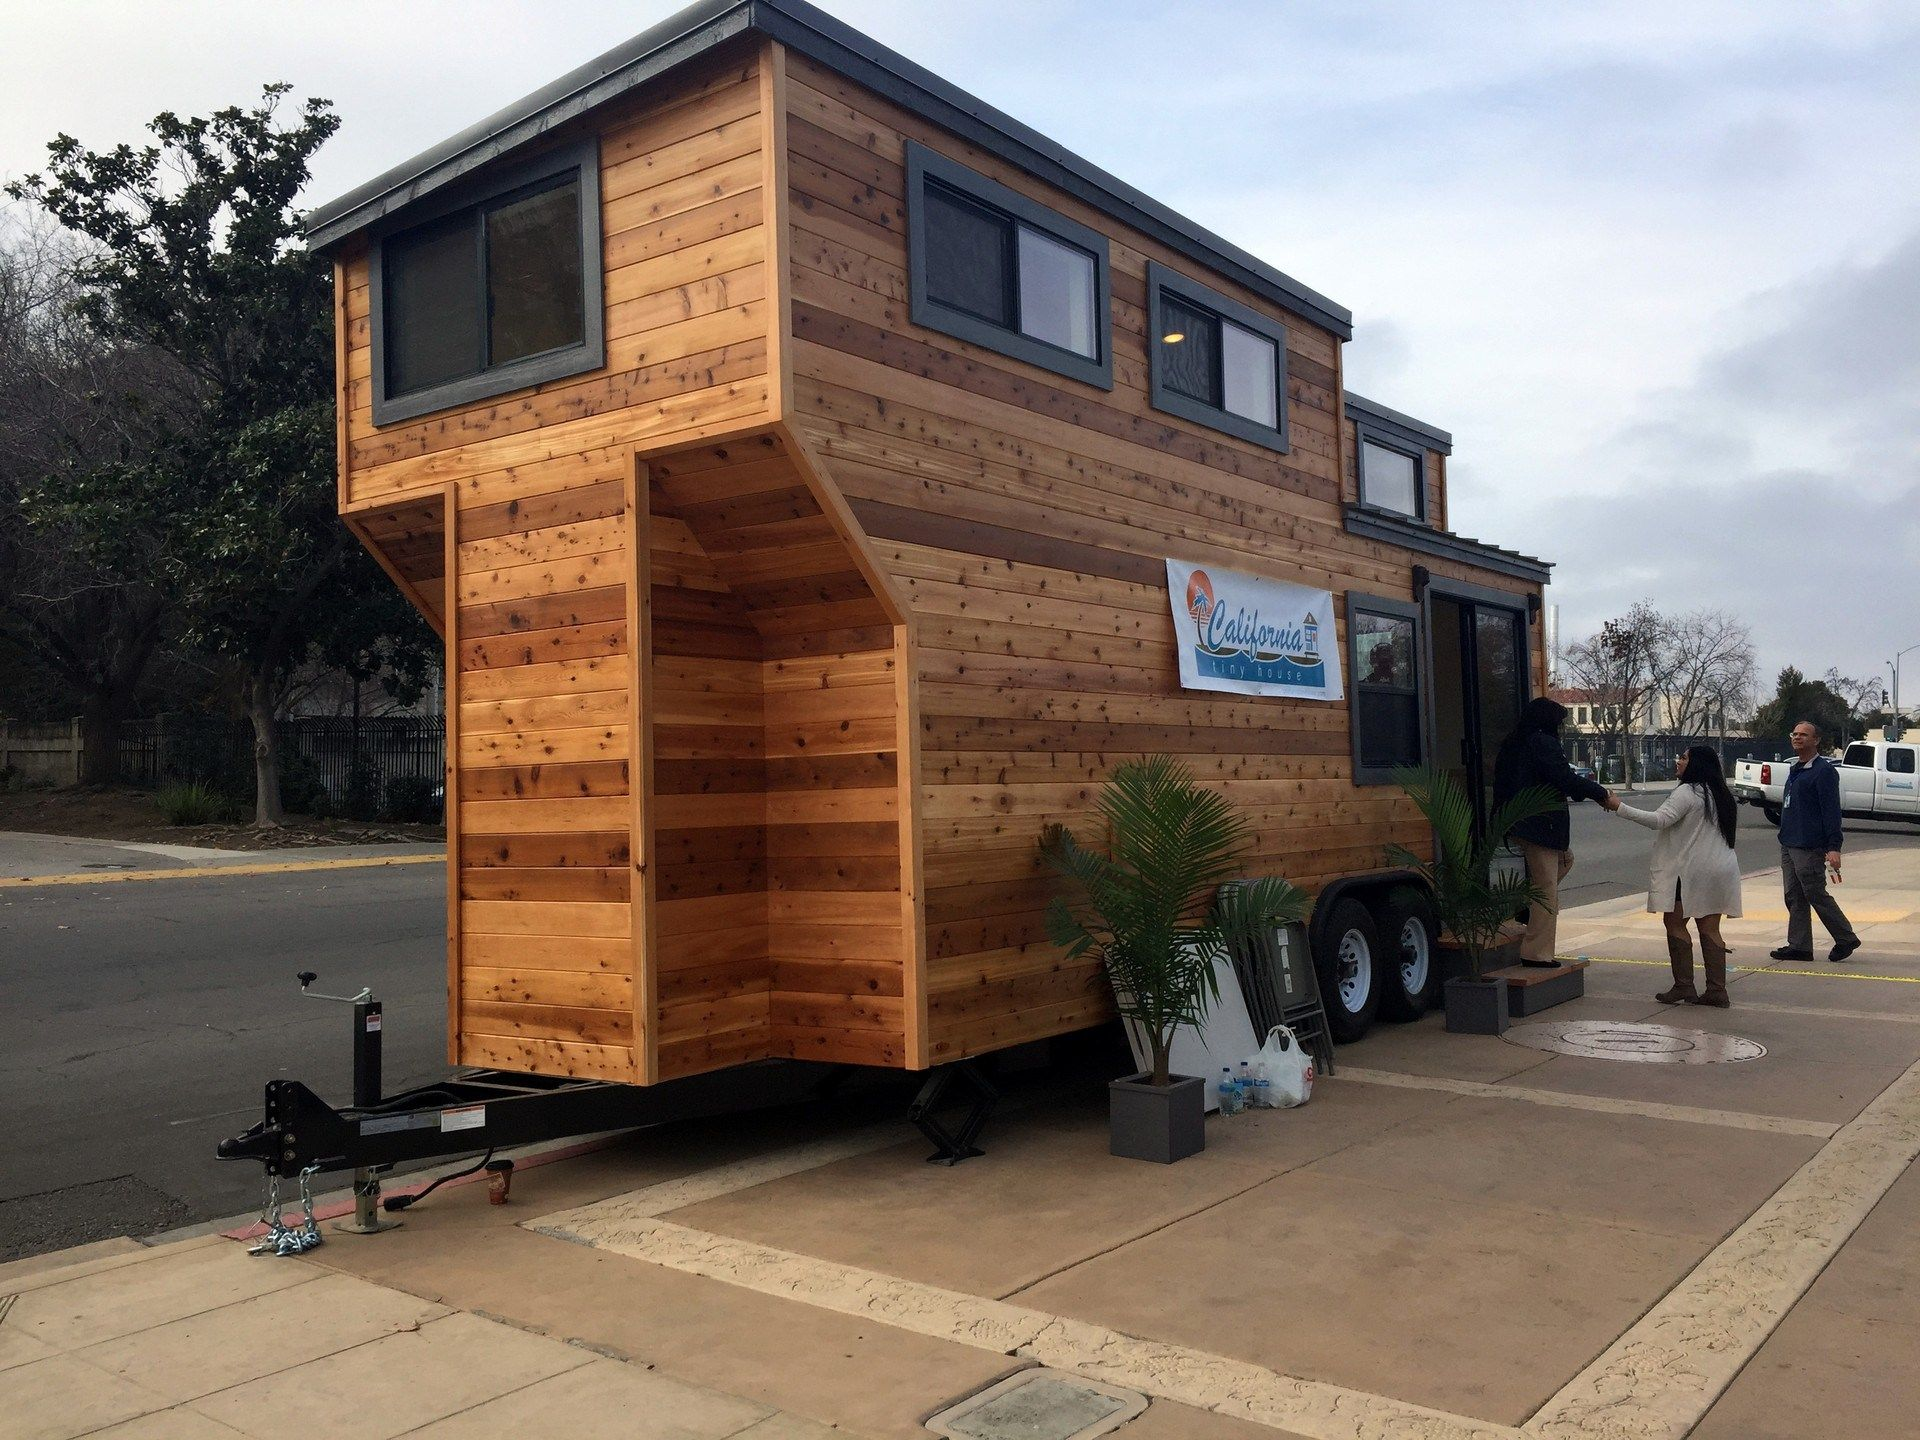 Tiny houses on wheels for sale california - Fresno Legalizes Tiny Houses With New Zoning Change